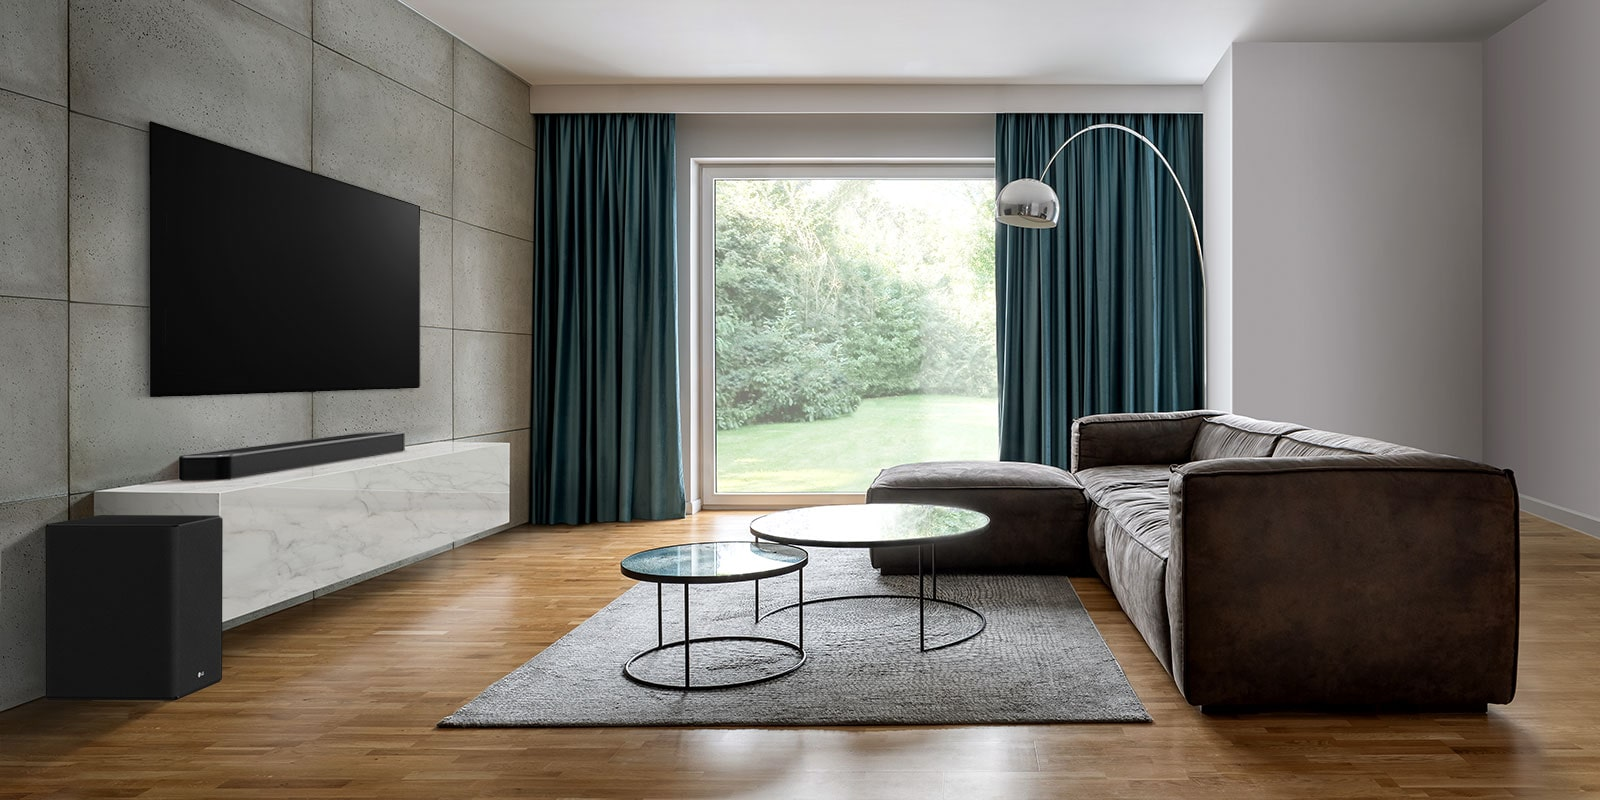 There is TV, a soundbar, and a subwoofer in a wide living room. A wave with grid is coming out from soundbar, measuring the entire space of living room.